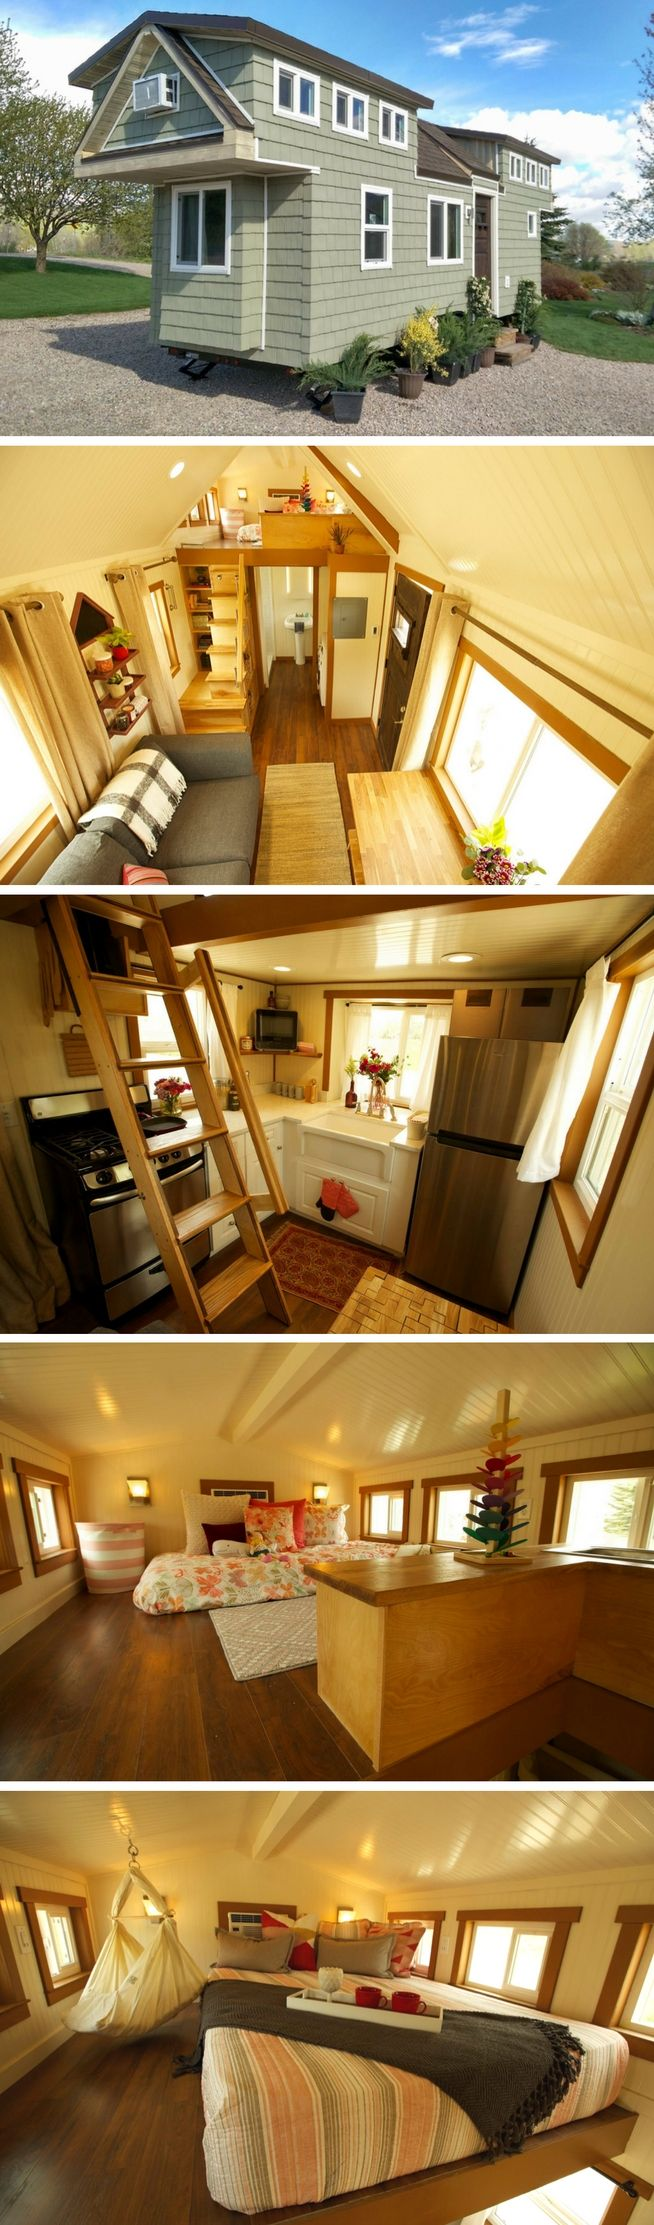 A Beautiful 200 Sq Ft Tiny House On Wheels, Built For A Family Of 4